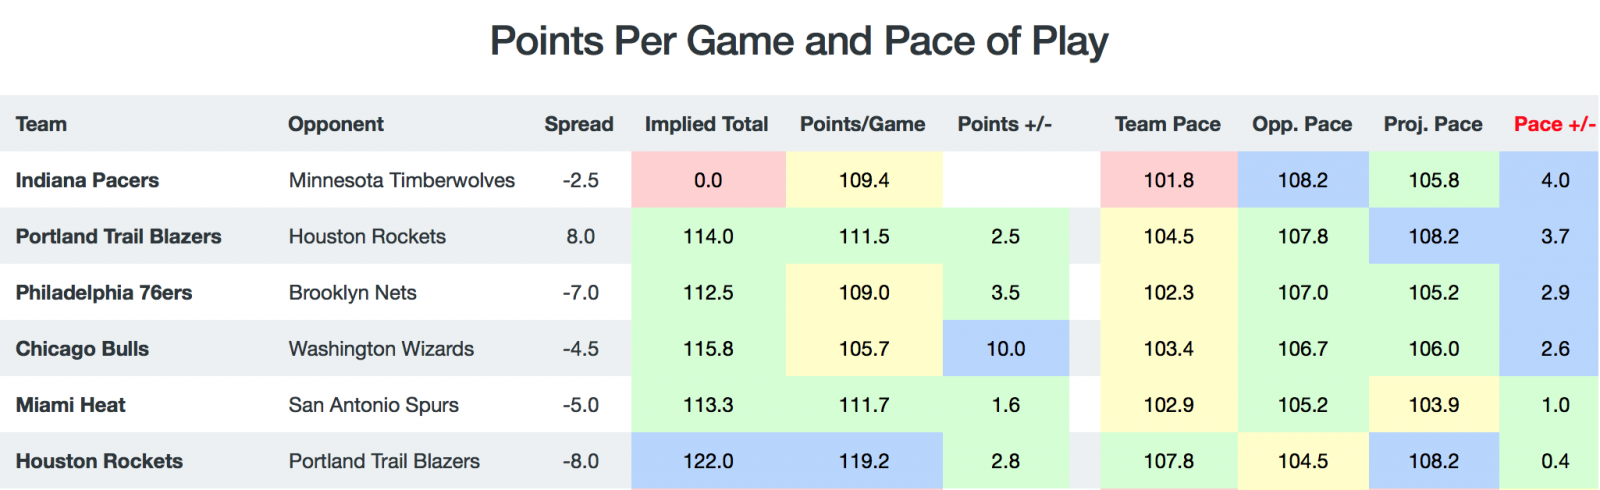 Game Totals - Pace